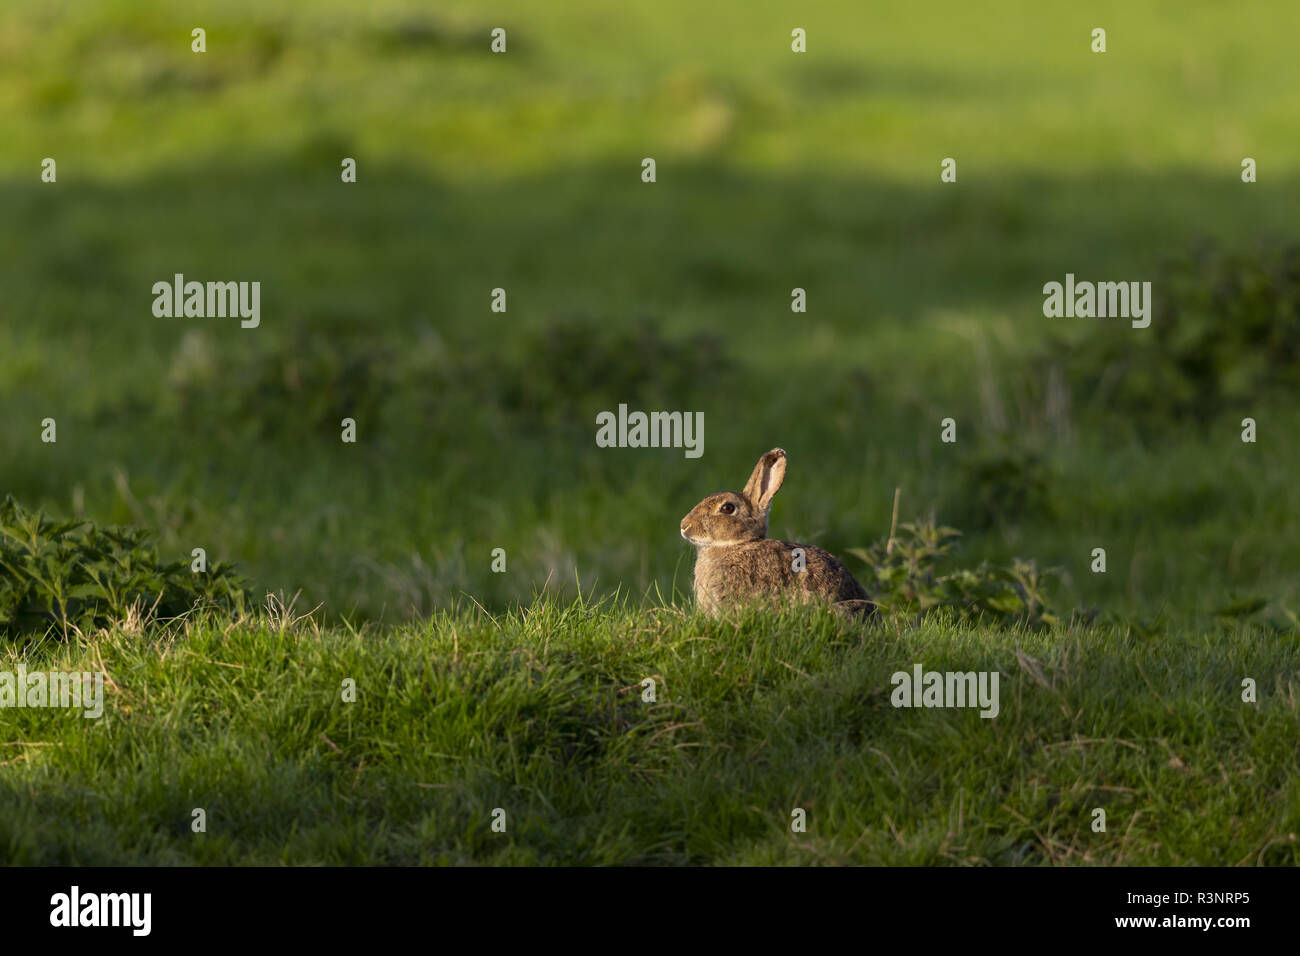 Rabbit (Oryctolagus cuniculus) laying in a meadow, England - Stock Image